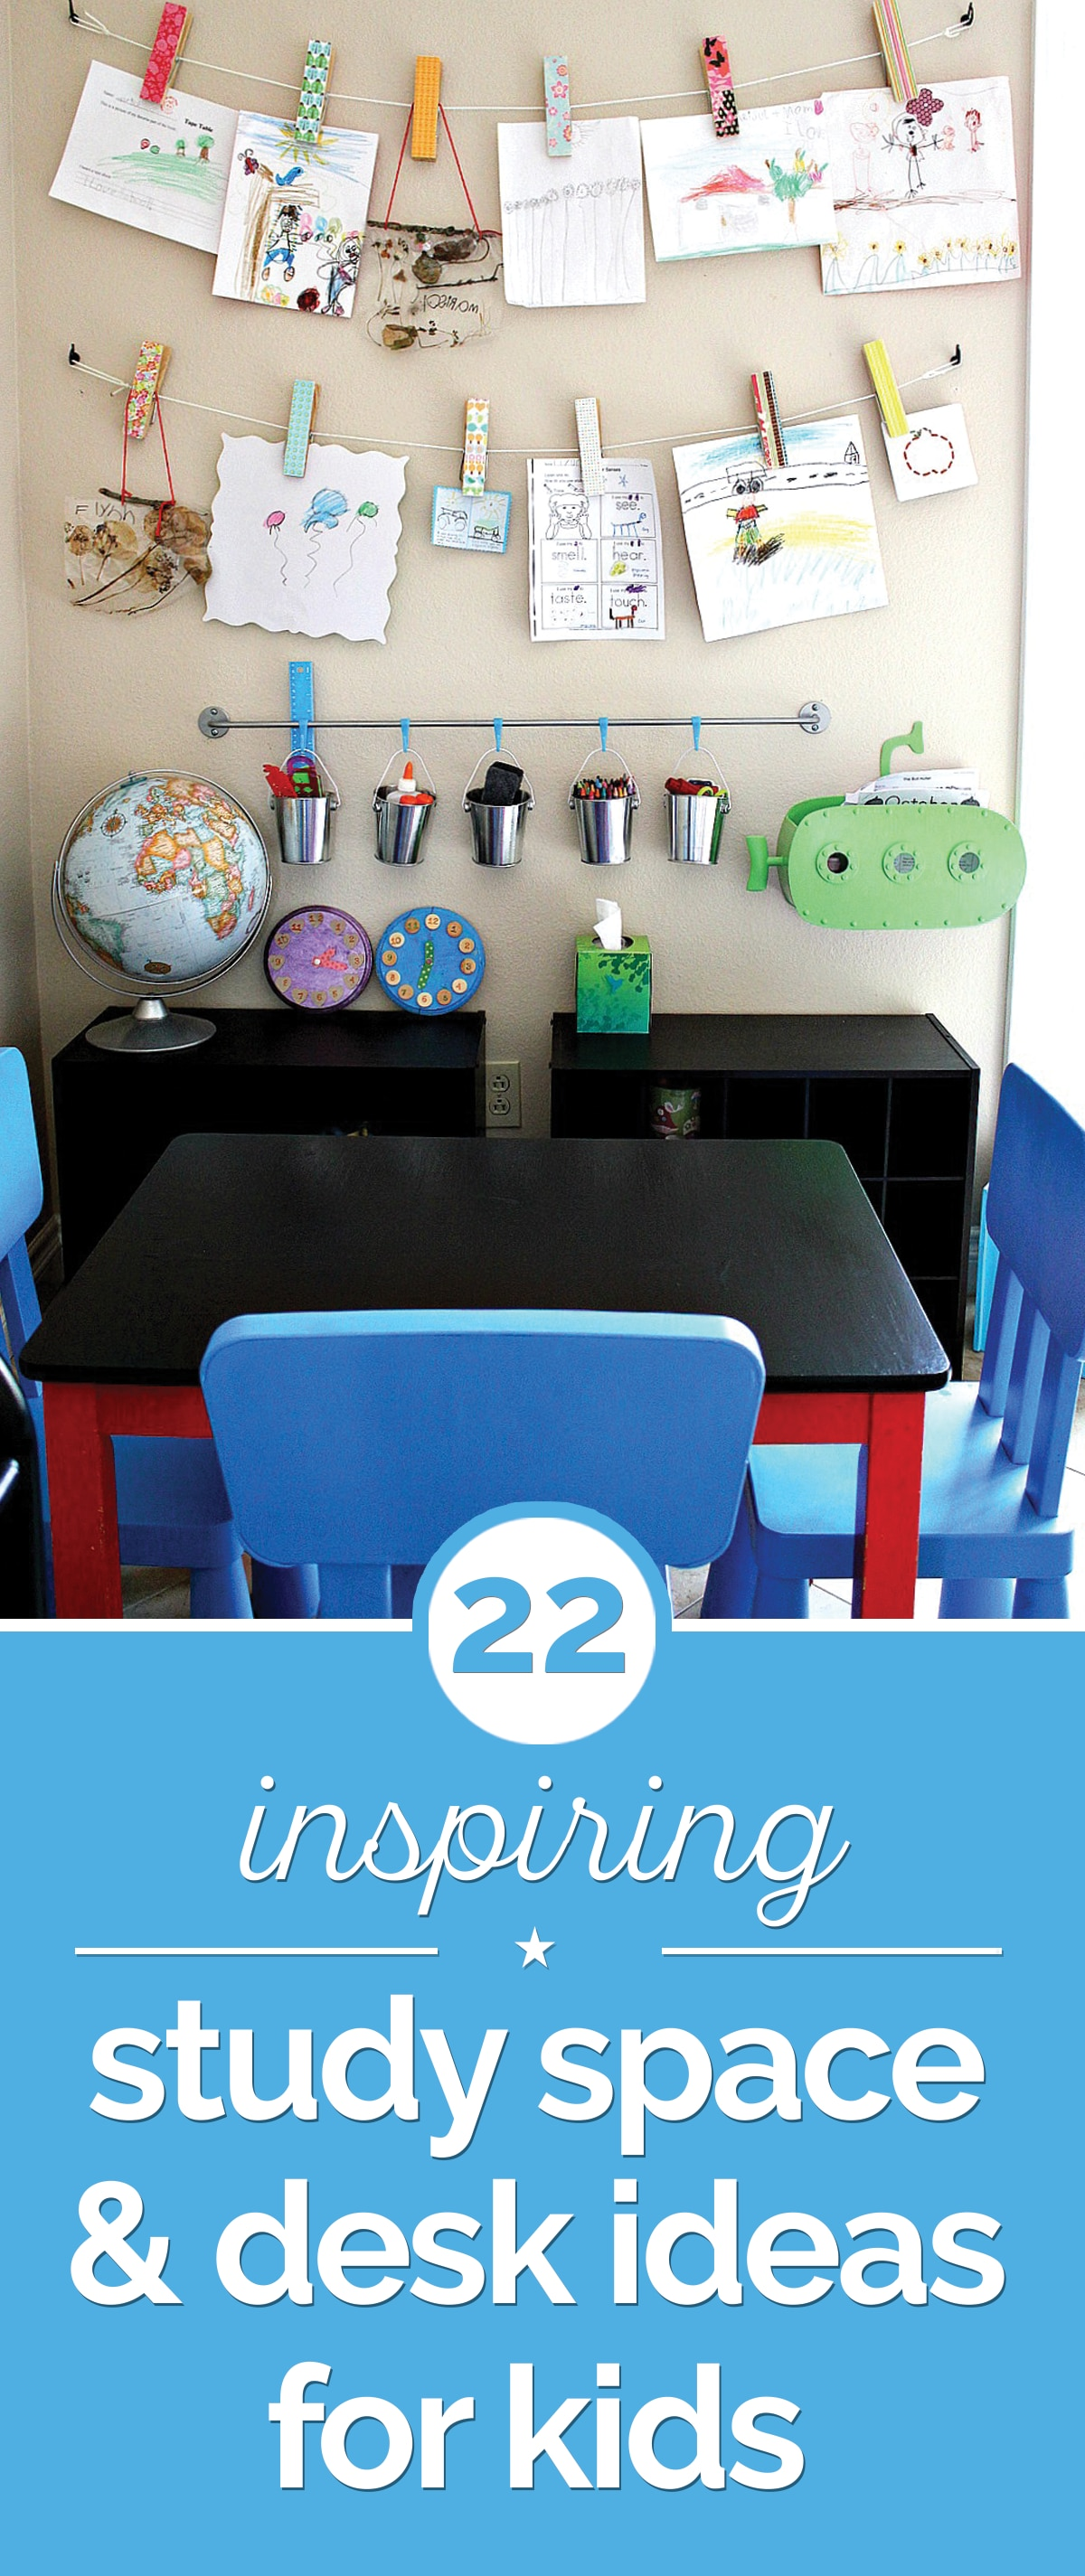 22 Inspiring Study Space & Desk Ideas for Kids | thegoodstuff